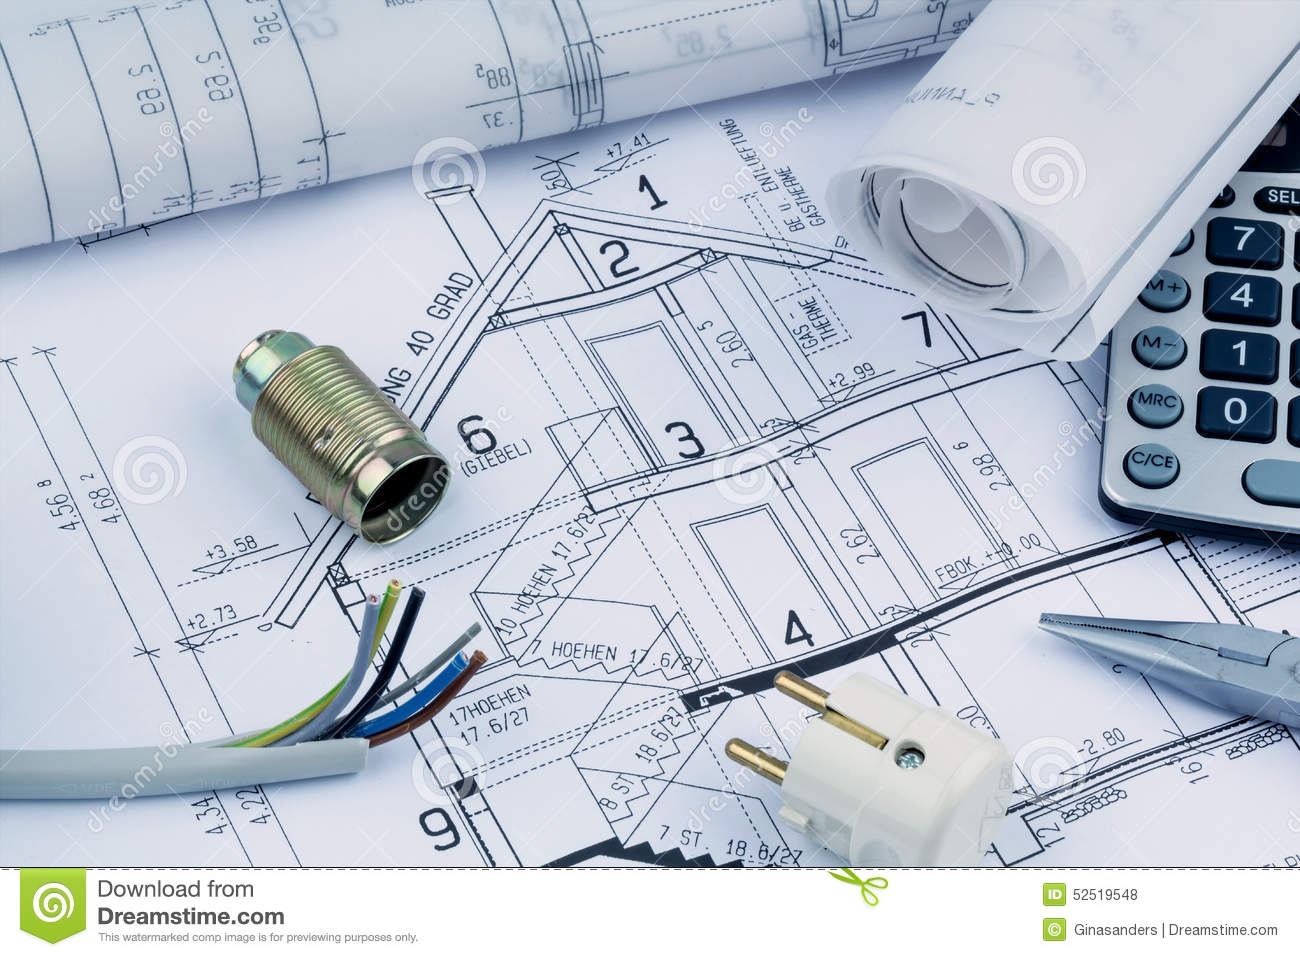 electrical plan new home a house plan electrical stock photo image of building 52519548  a house plan electrical stock photo